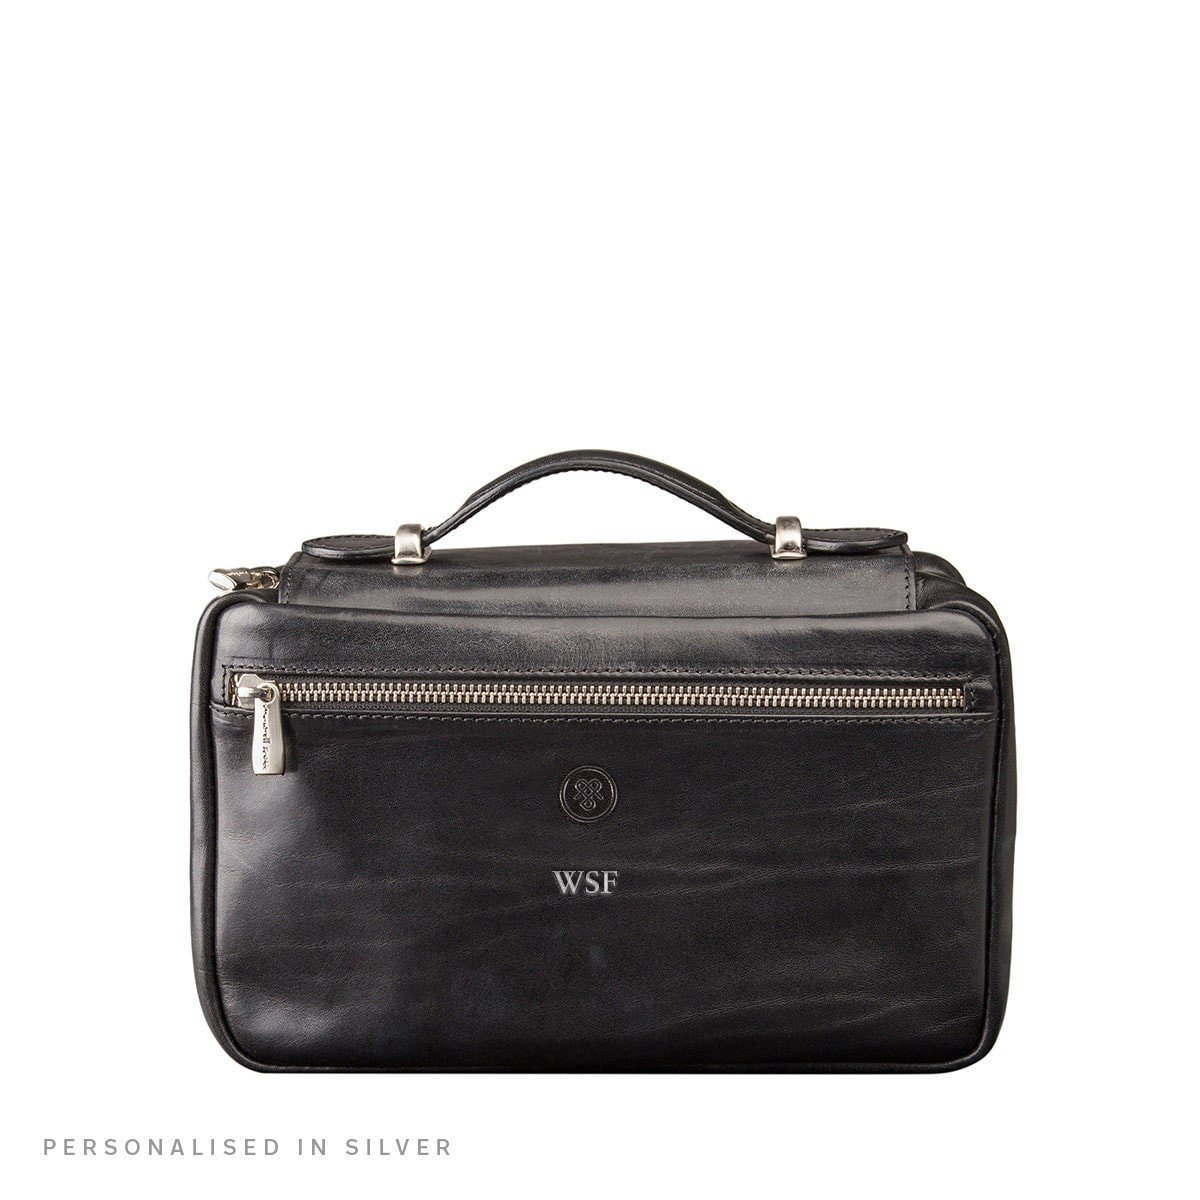 Maxwell Scott Personalized Luxury Black Leather Cosmetics Case (The Cascina) - One Size by Maxwell Scott Bags